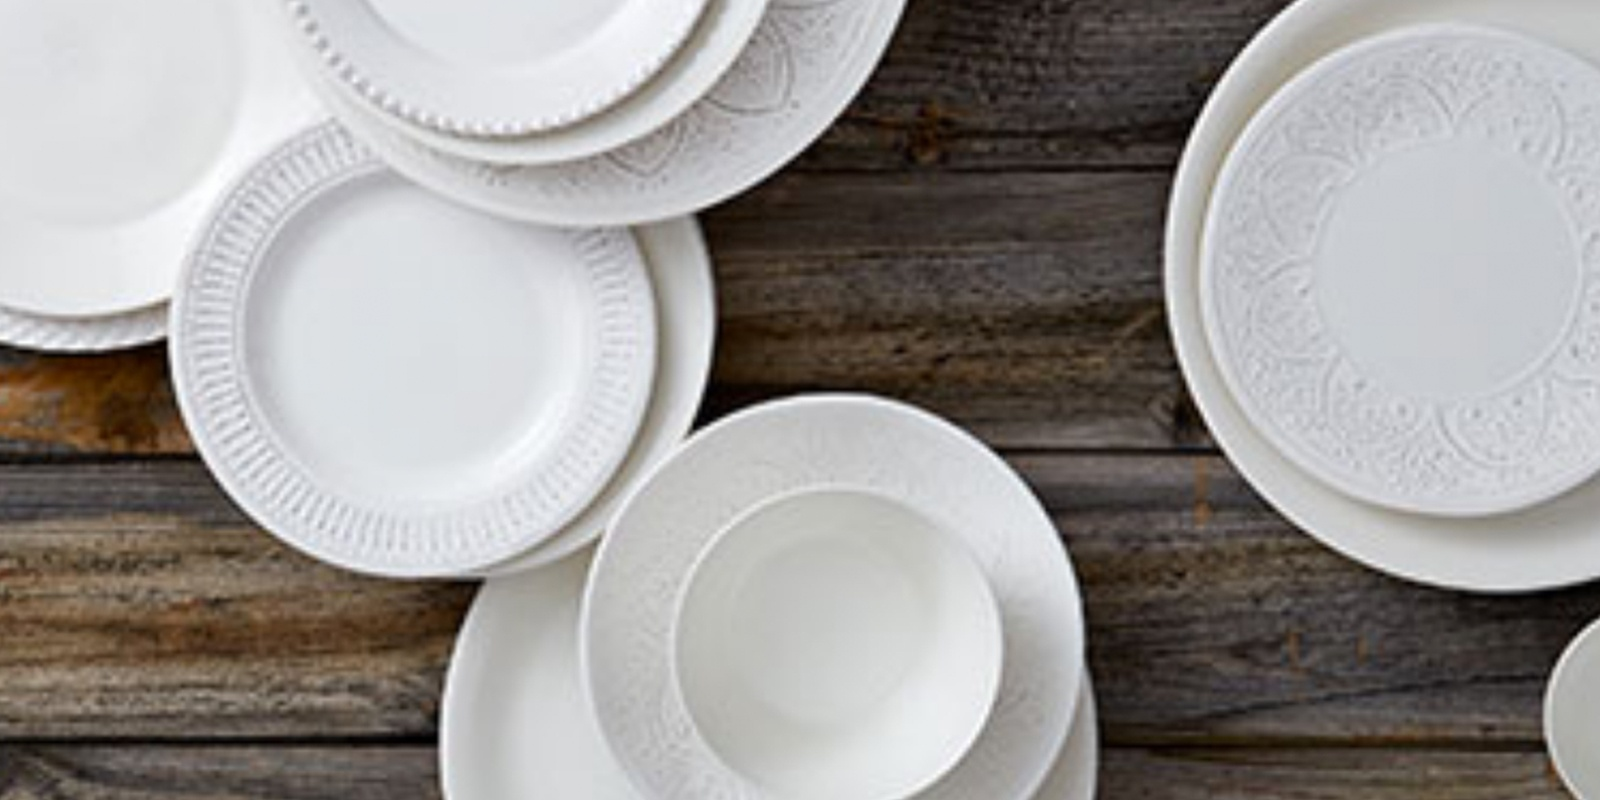 display of white dishes from HomeSense